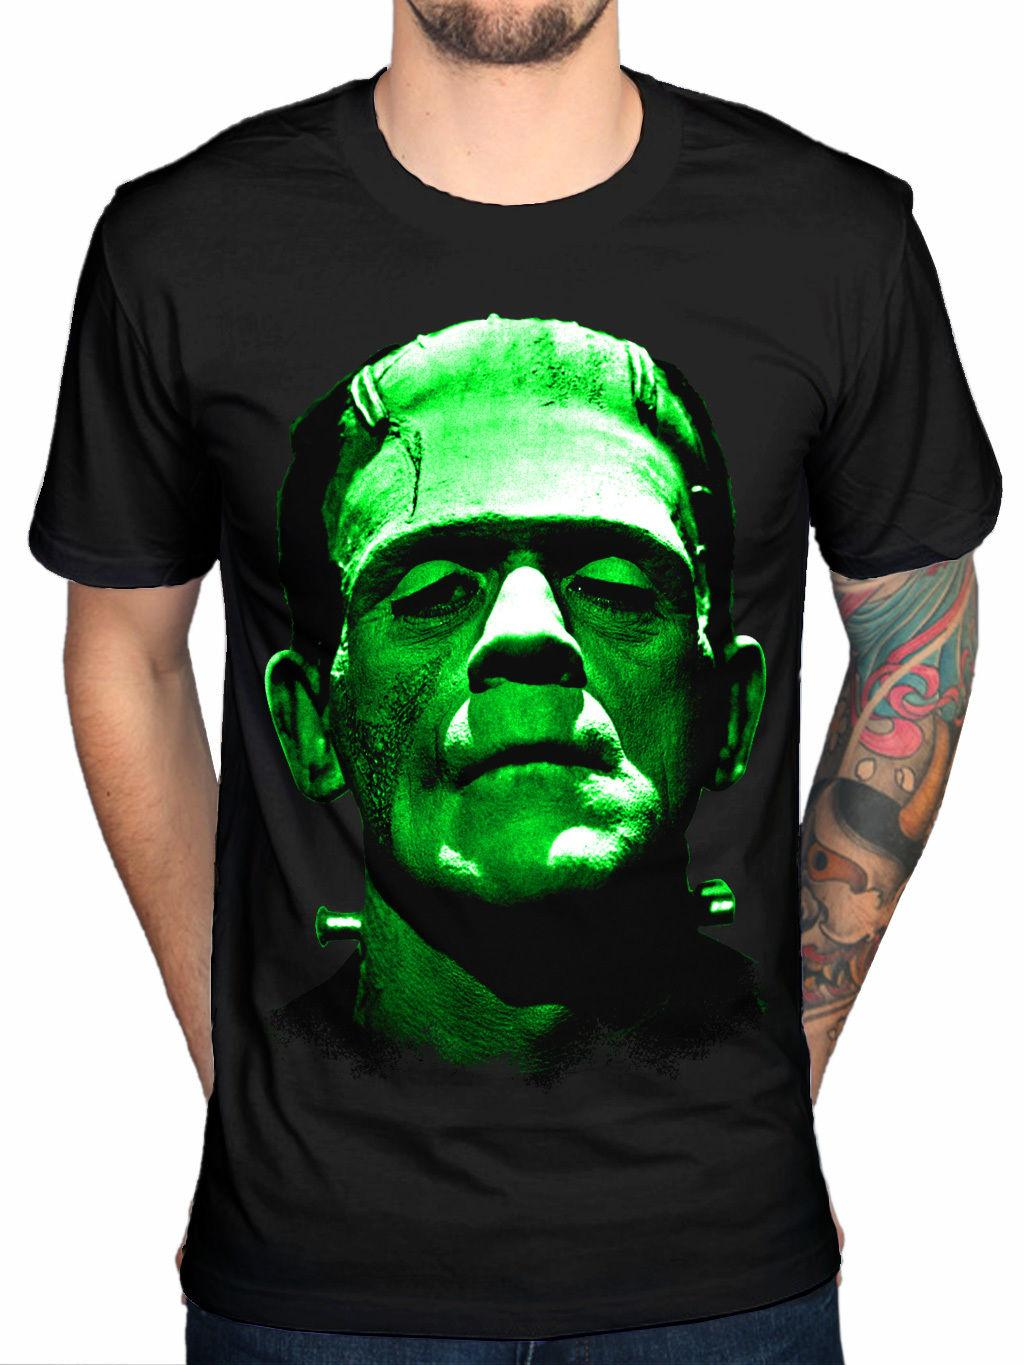 Official Plan 9 Frankentein New Unisex Graphic T-Shirt Merchandise Mens Black O-Neck T Shirt Top Tee Basic